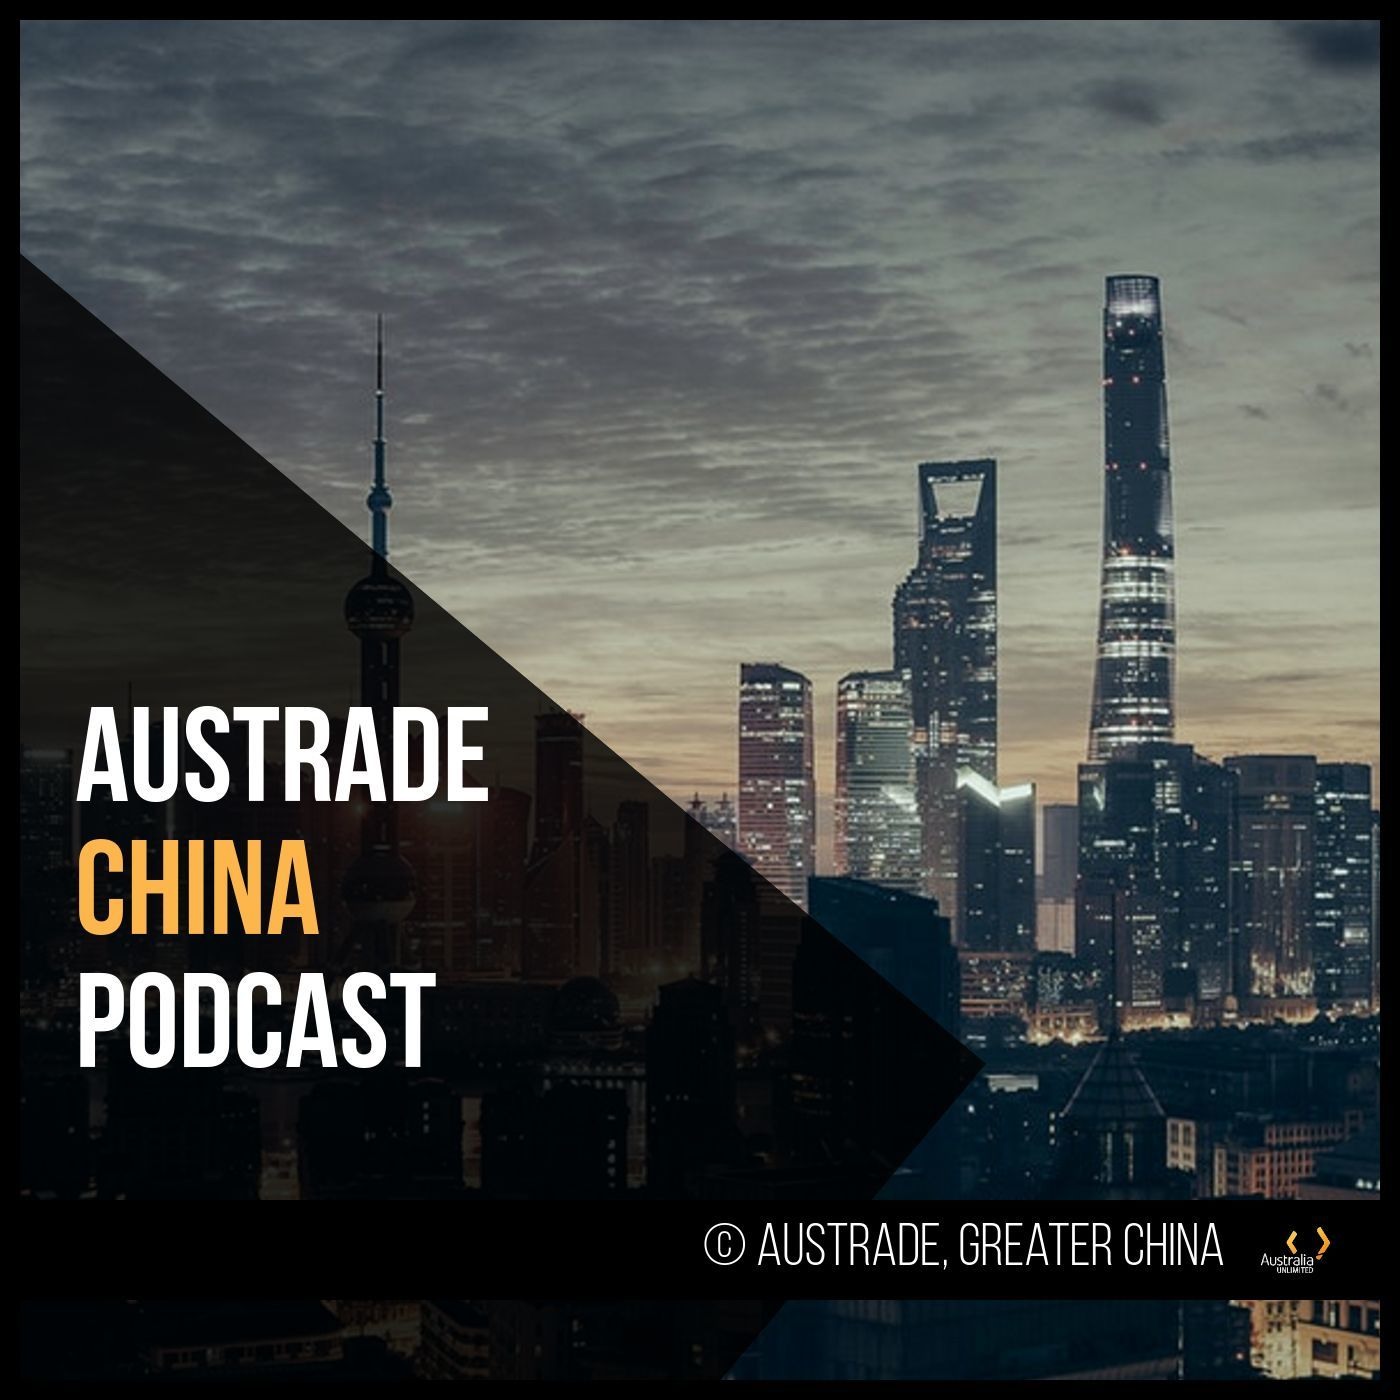 Ep.14 With Phoebe Kung On Cross-border E-Commerce With Alibaba